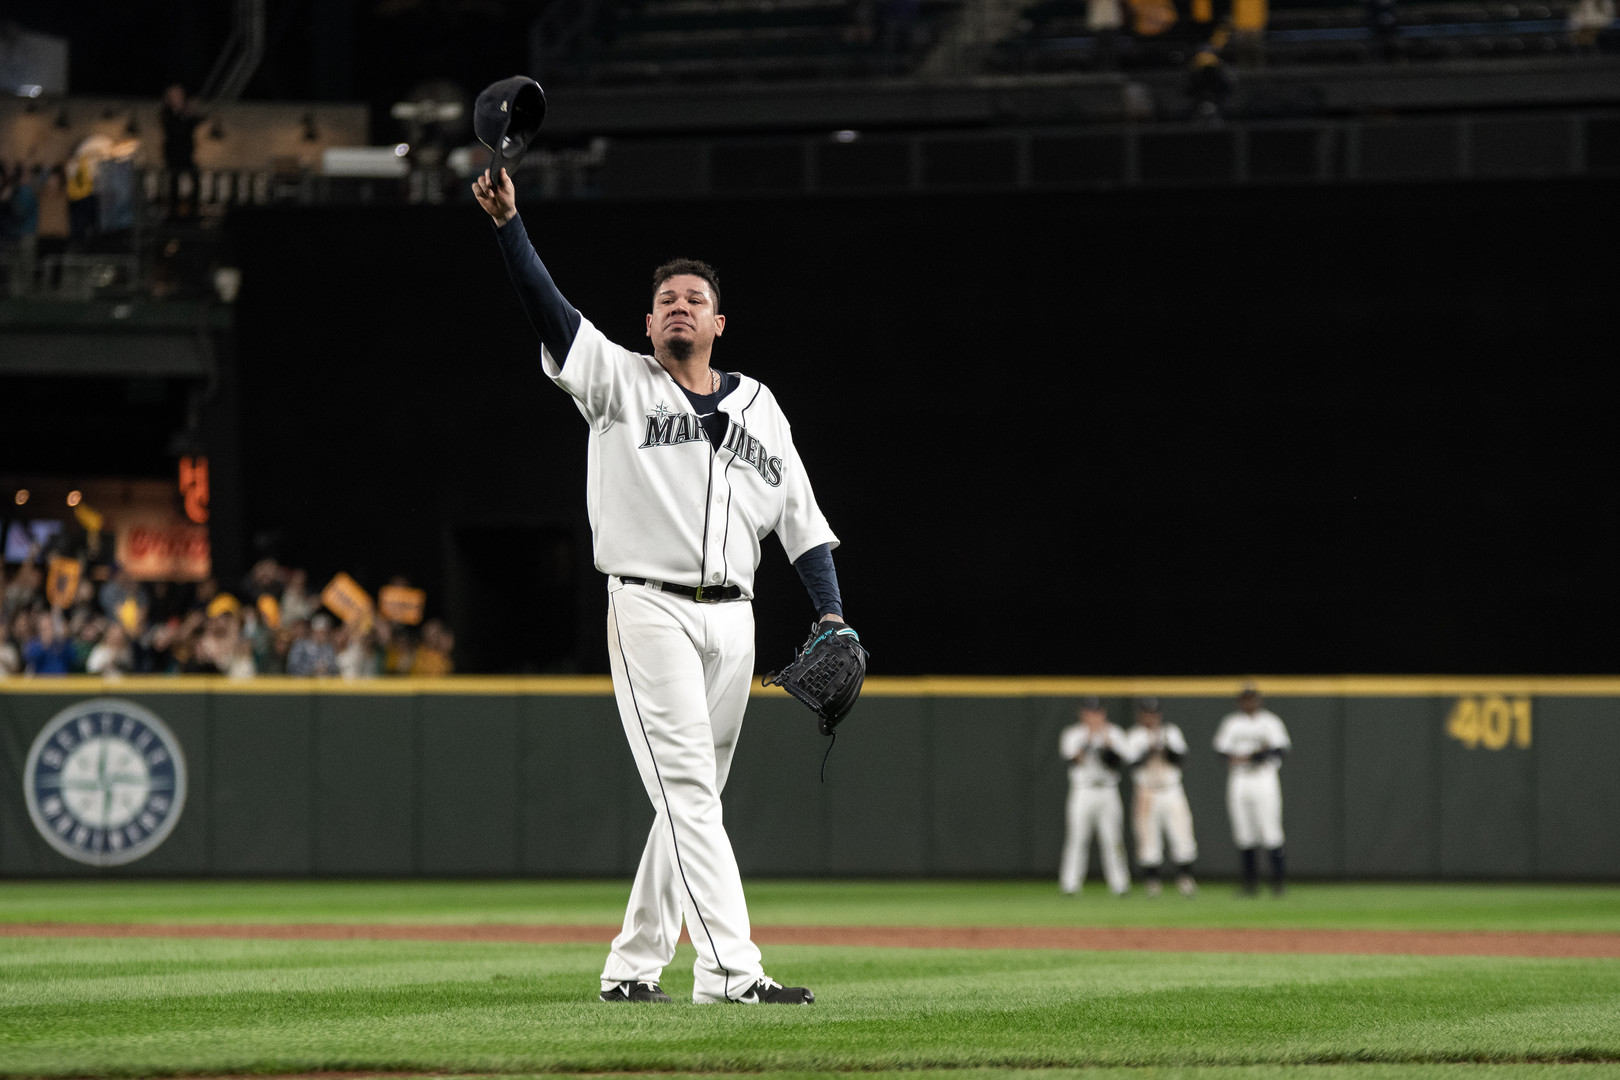 Pitcher Felix Hernandez raises his hat in a salute to admiring fans as he walks off the pitchers mound for the last time as a Seattle Mariner. Oakland Athletics vs. The Seattle Mariners, Seattle, September 27th, 2019.